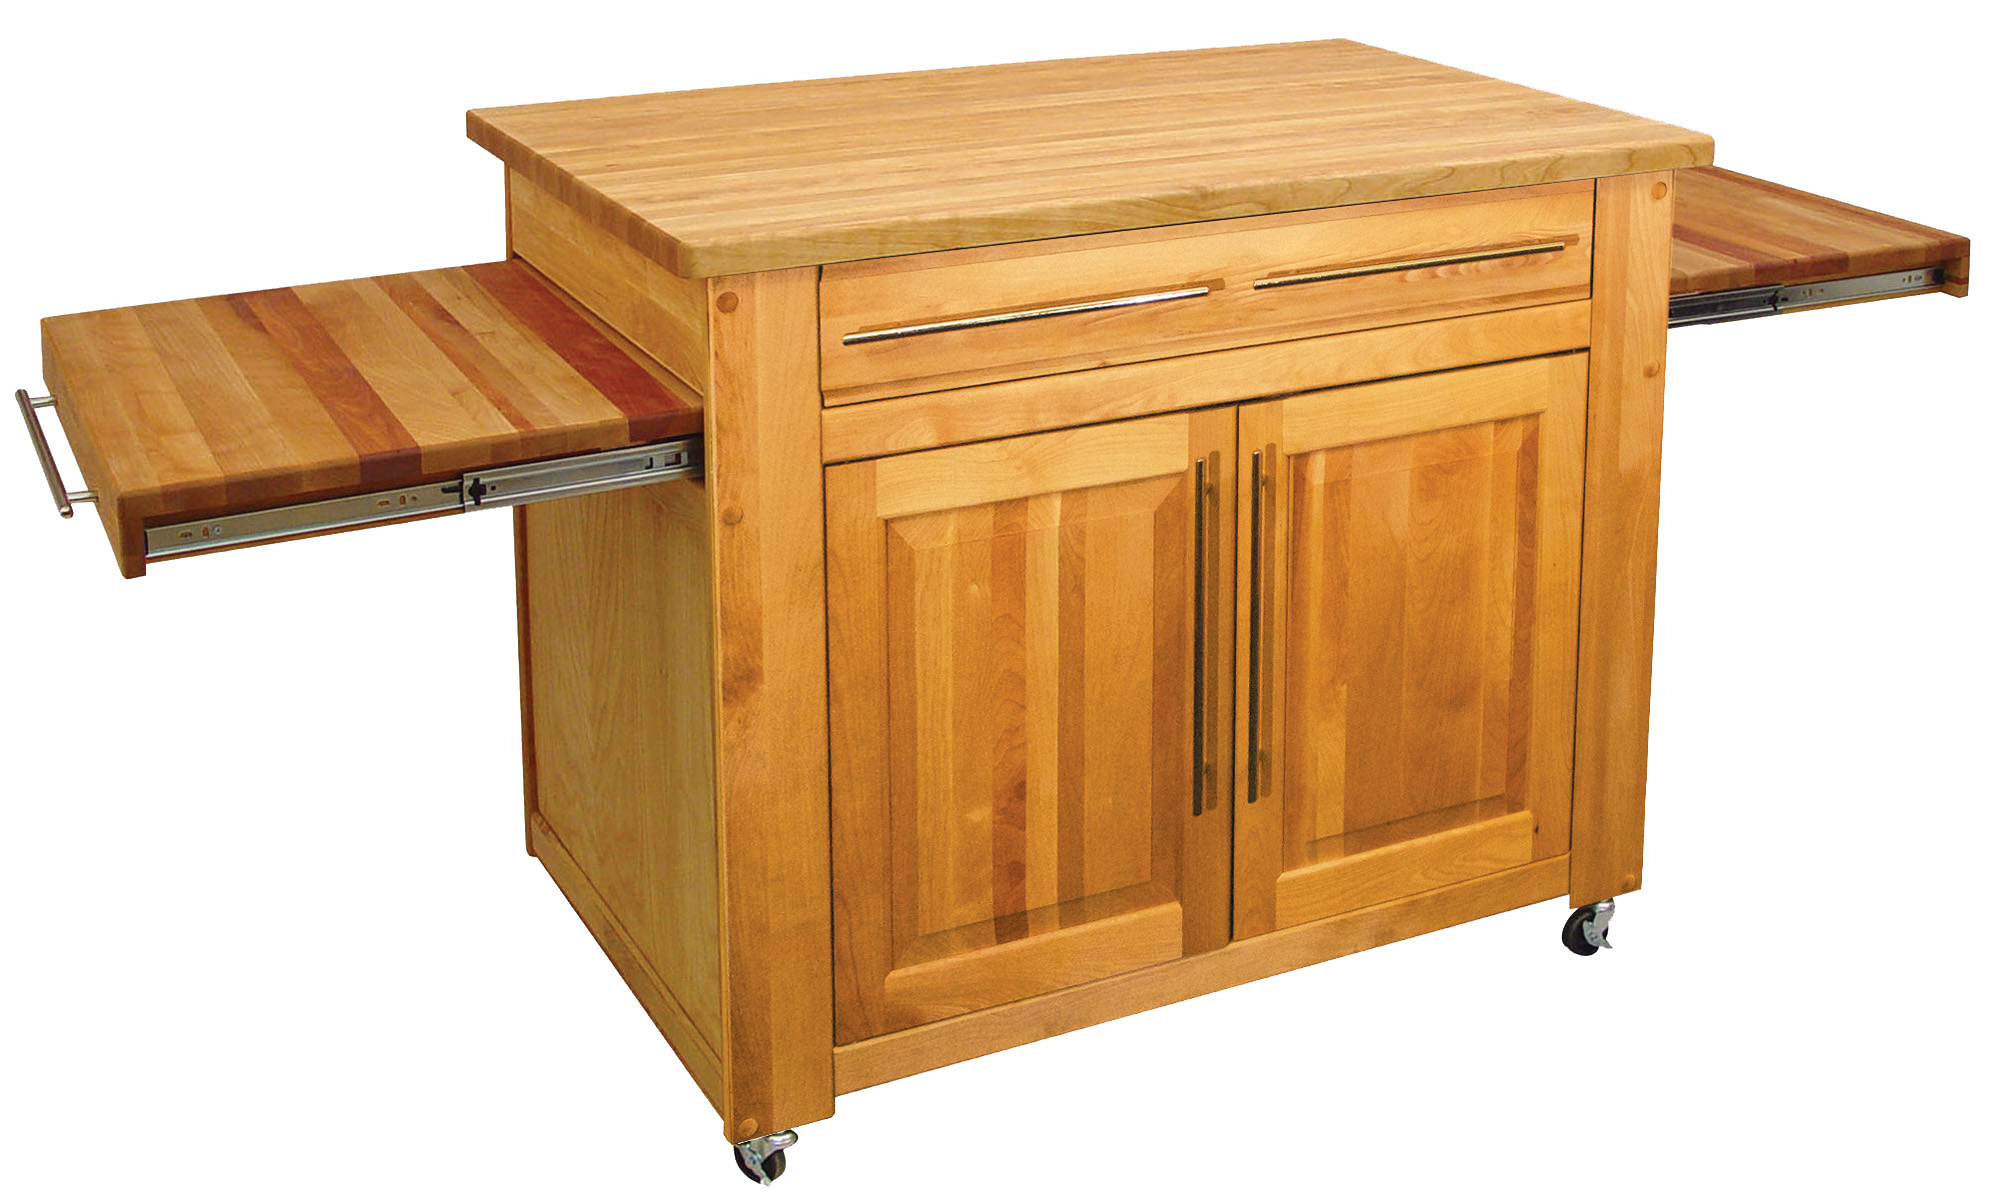 Catskill's Empire Work Center – Butcher Block Island, Pull-Out Leaves